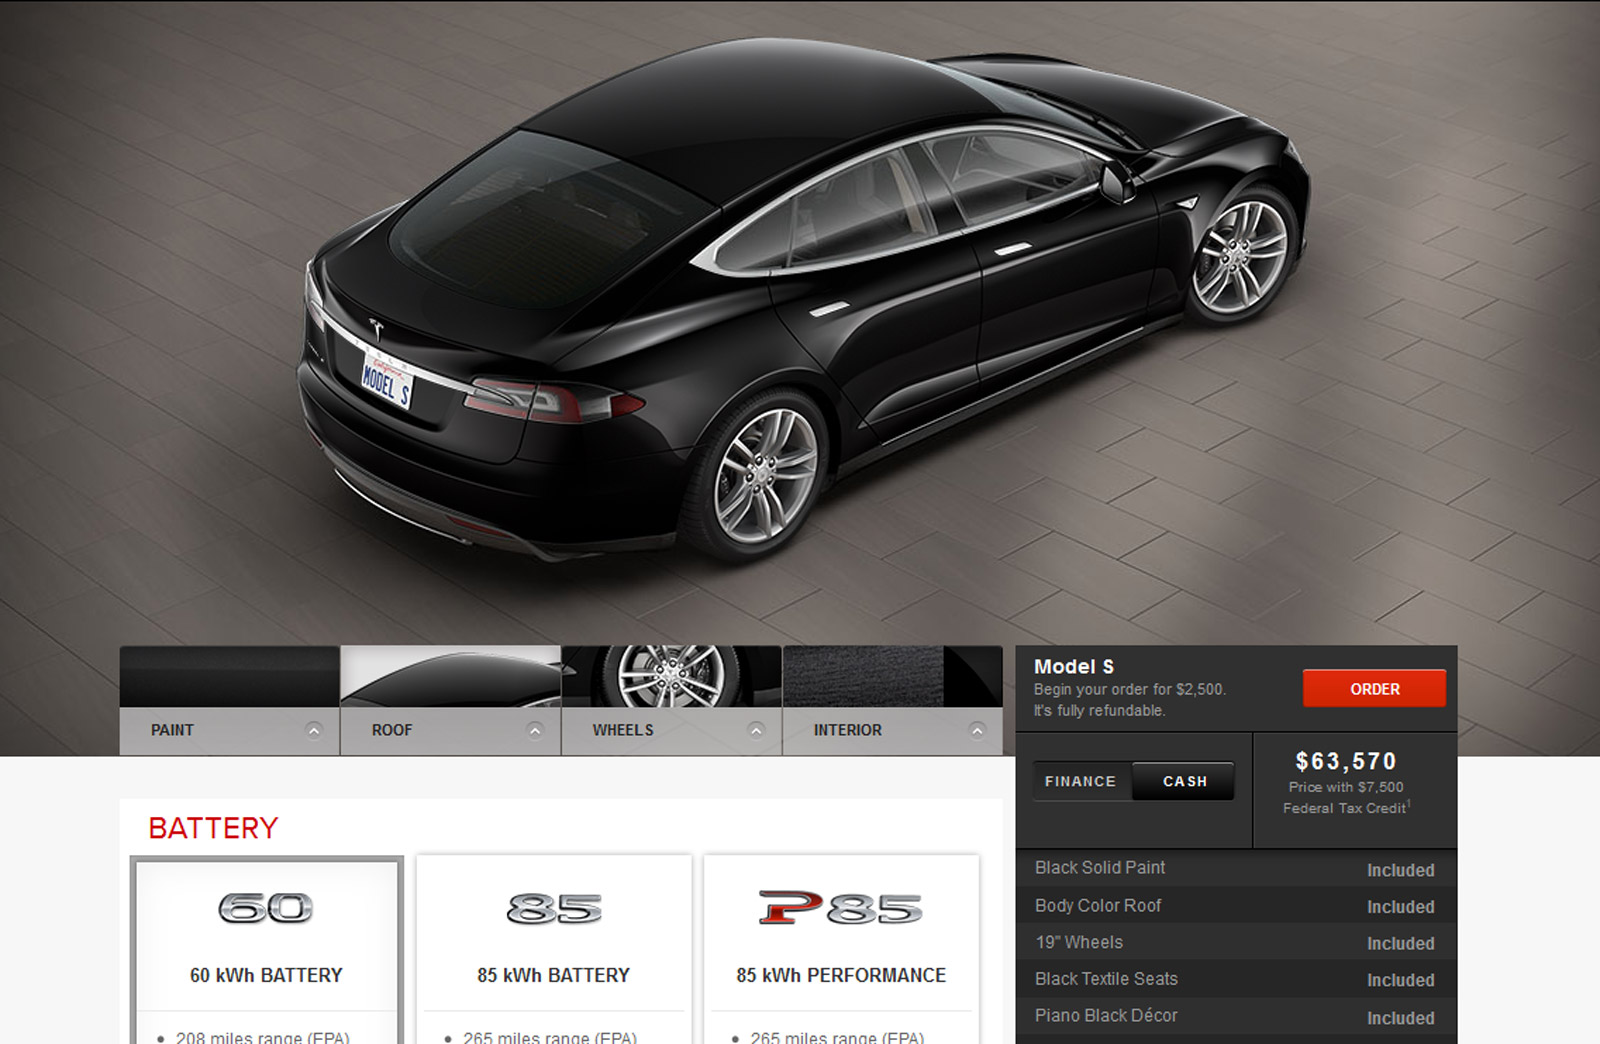 Tesla Ups Prices On Some 2013 Model S Options